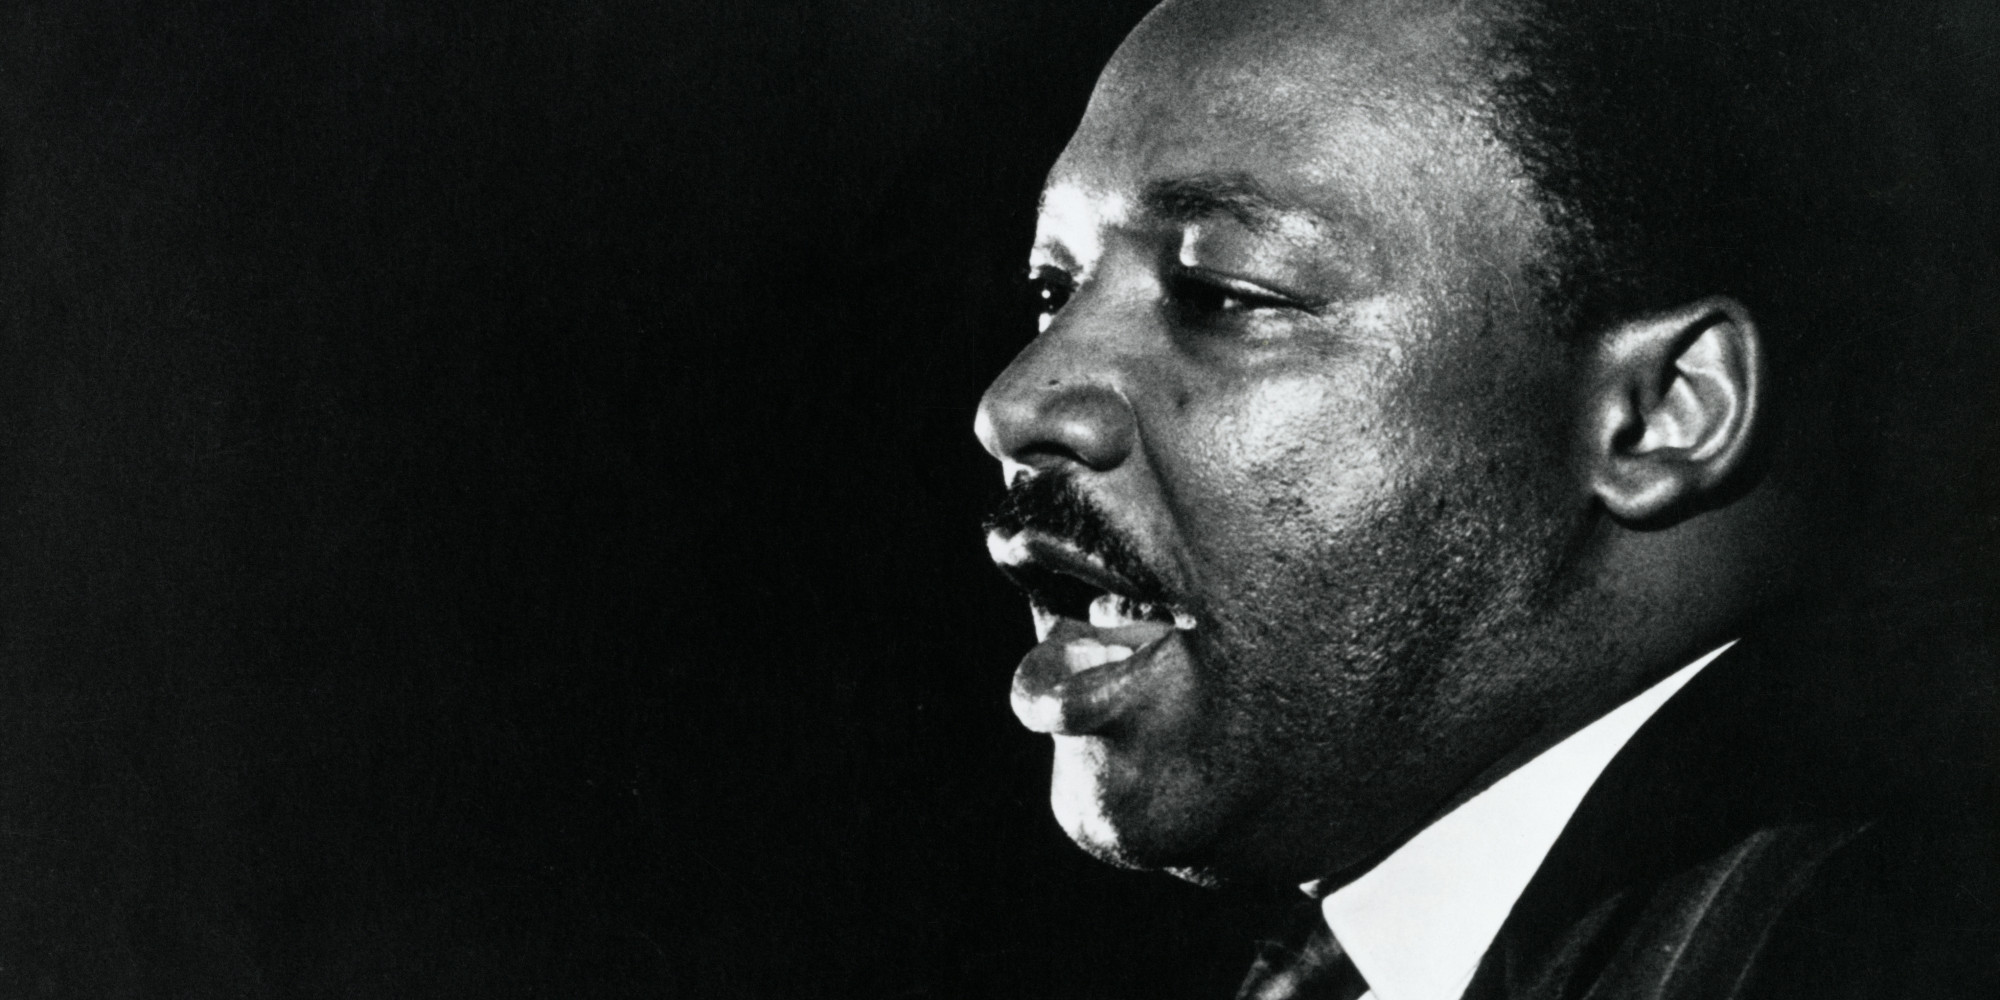 martin luther king speech analysis